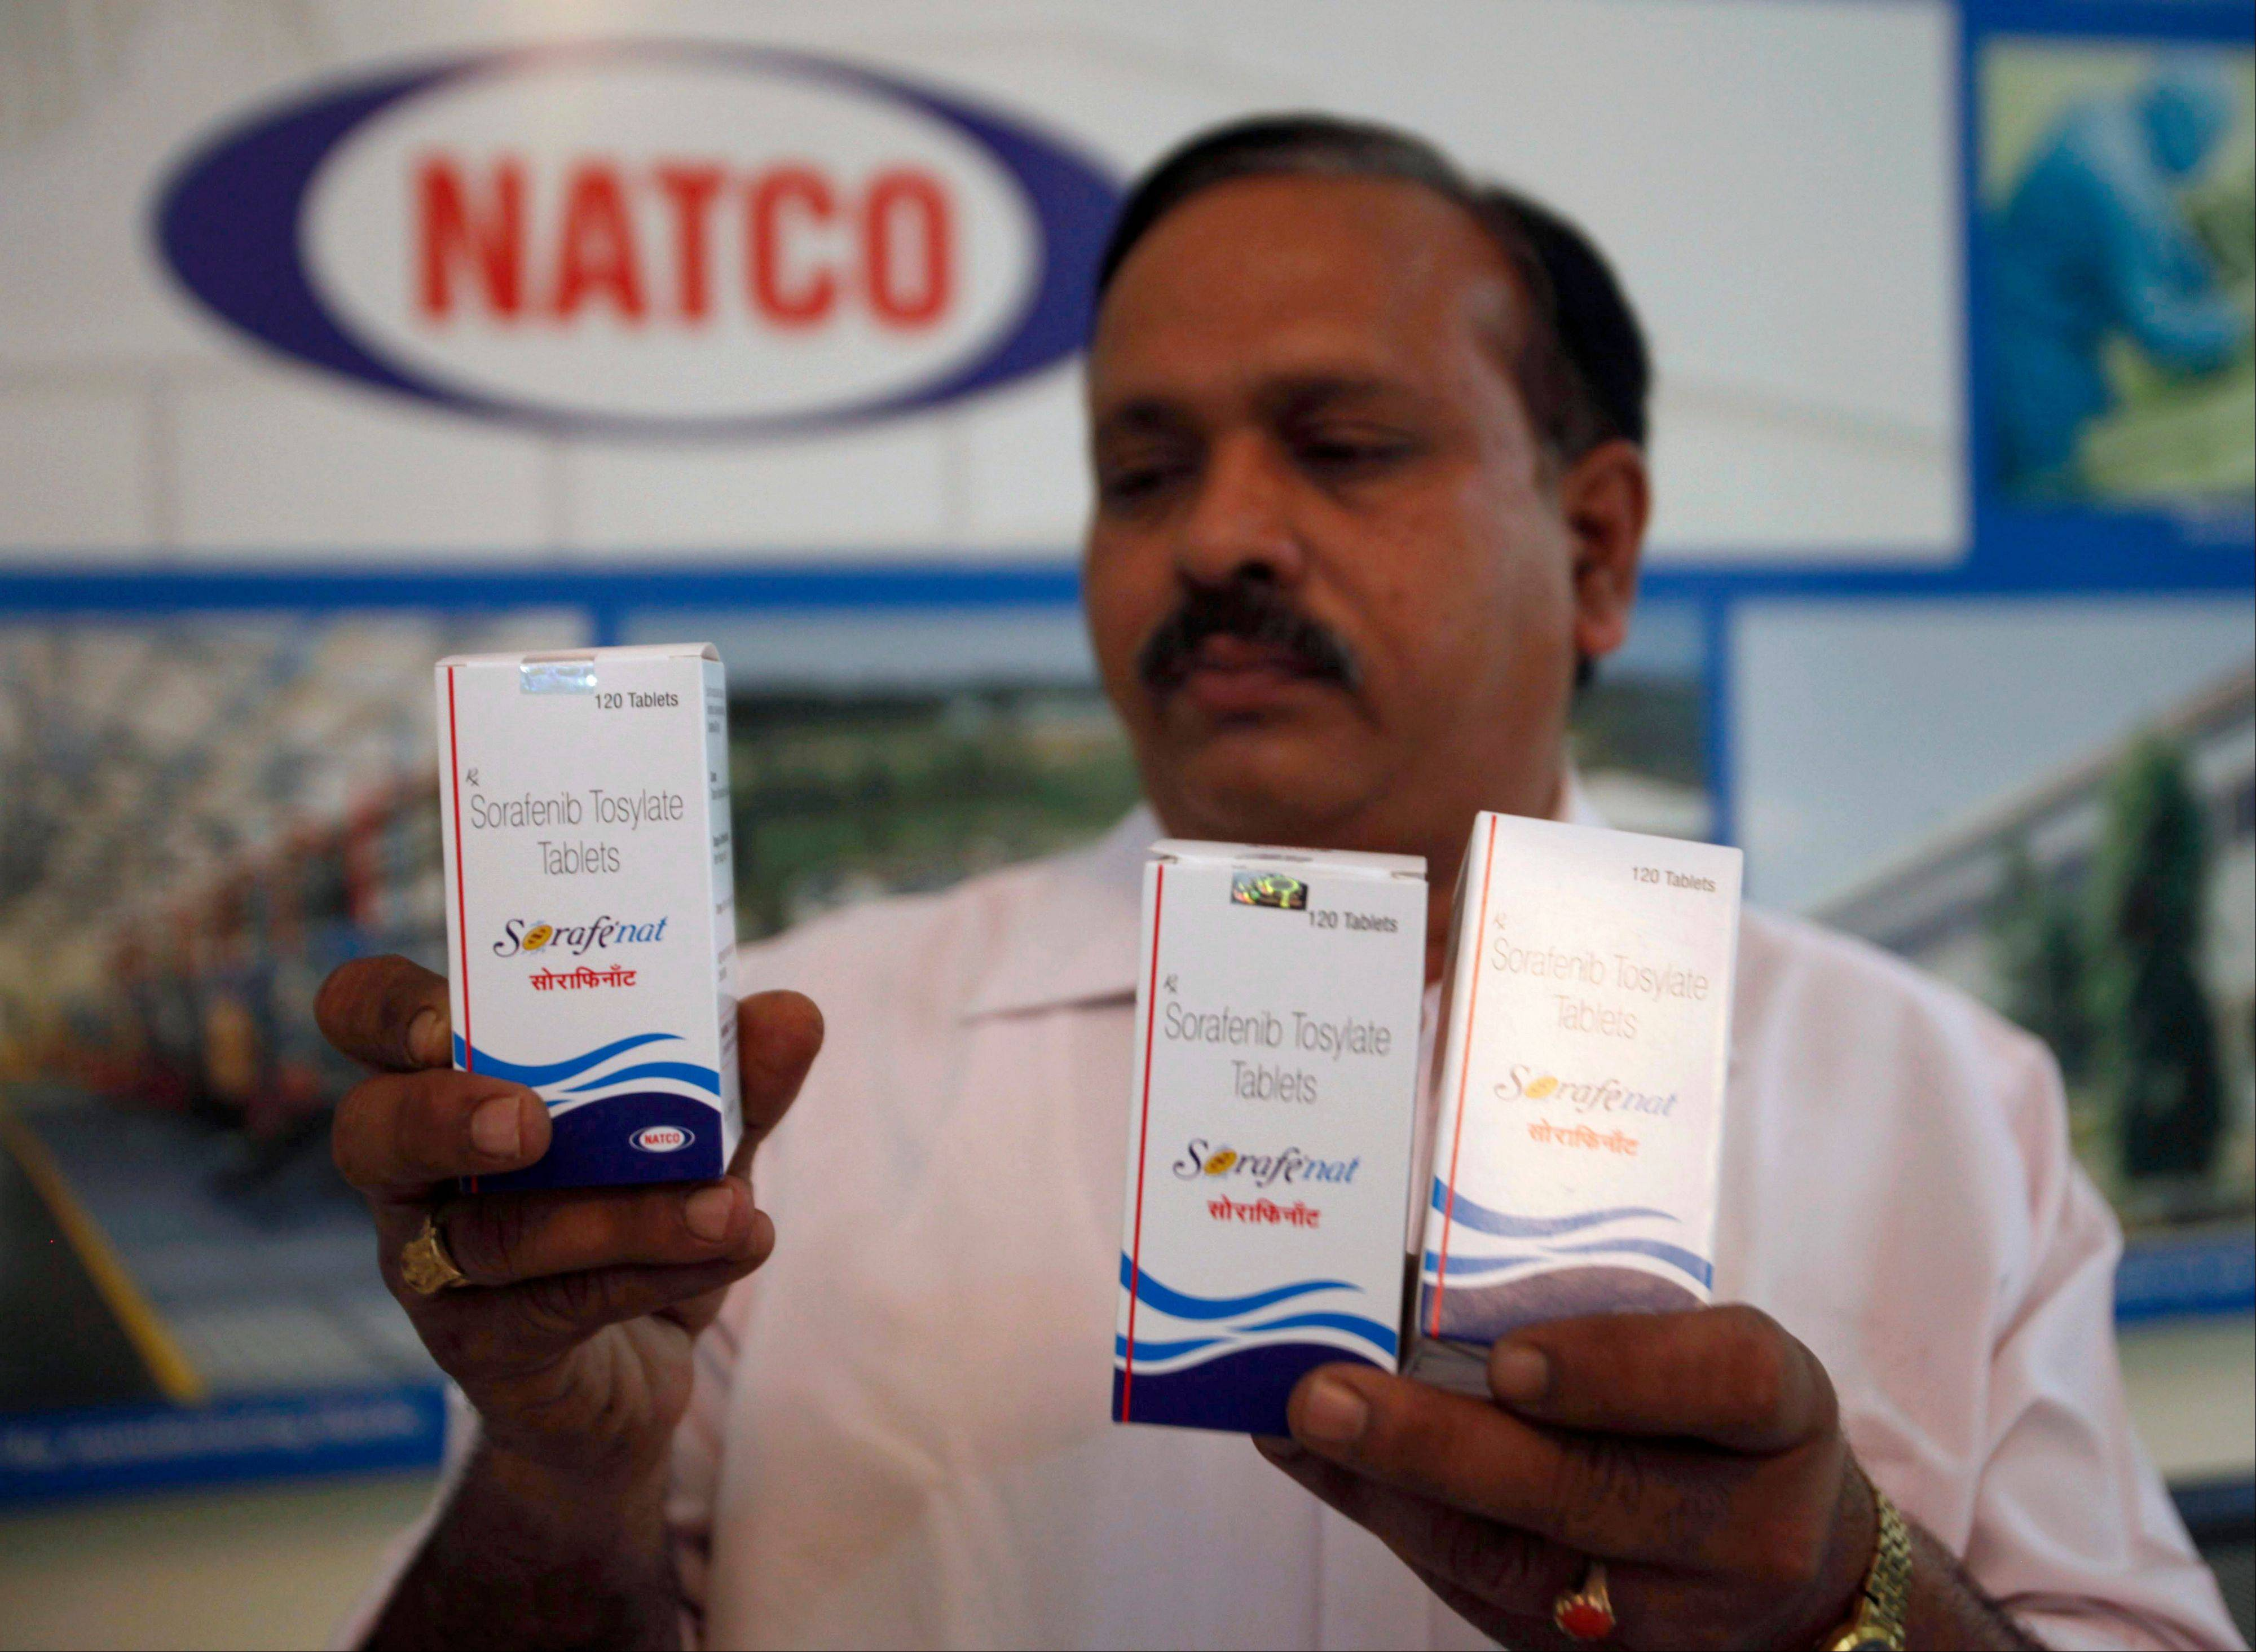 Natco Pharma Ltd. Secretary and General Manager Legal and Corp. Affairs M. Adinarayana displays Sorafenib Tosylate drugs meant for cancer treatment, at the companyís head office in Hyderabad, India. India's patent appeals office.